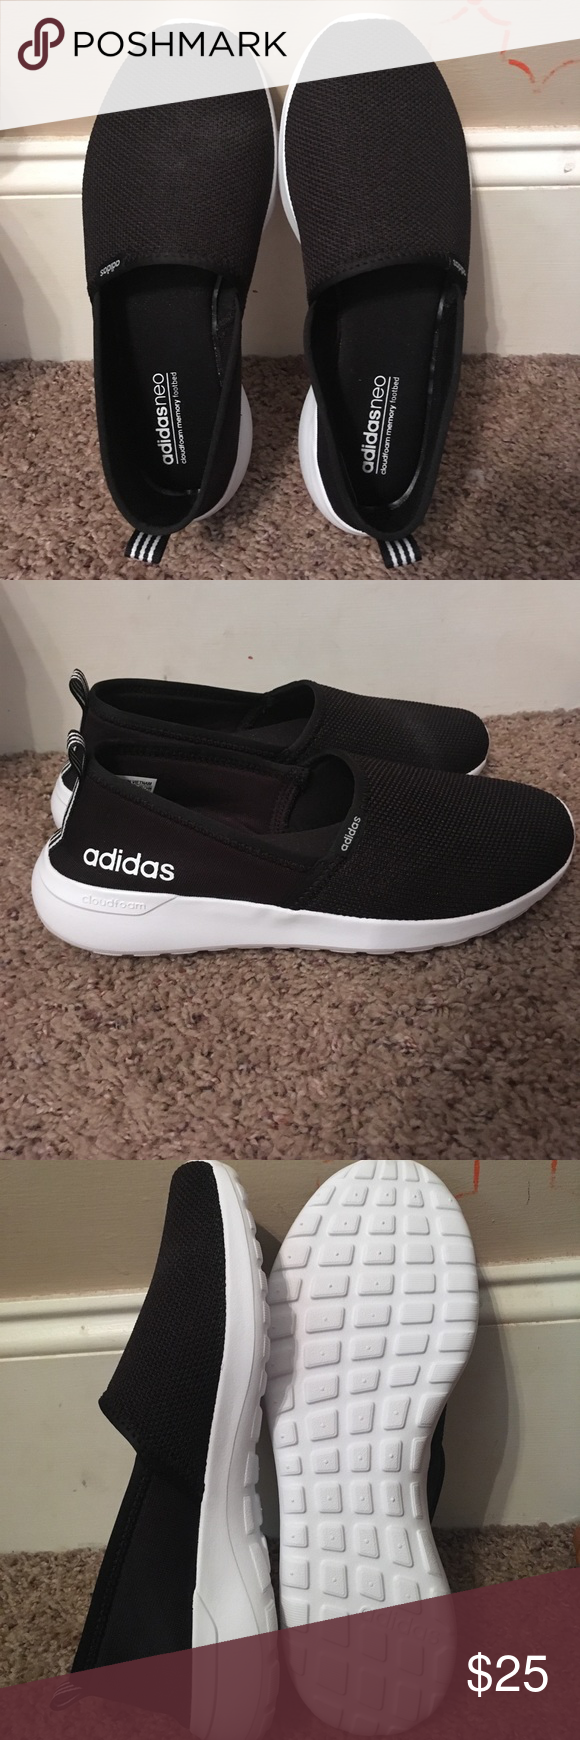 Adidasneo memory foam shoes Black with white sole, memory